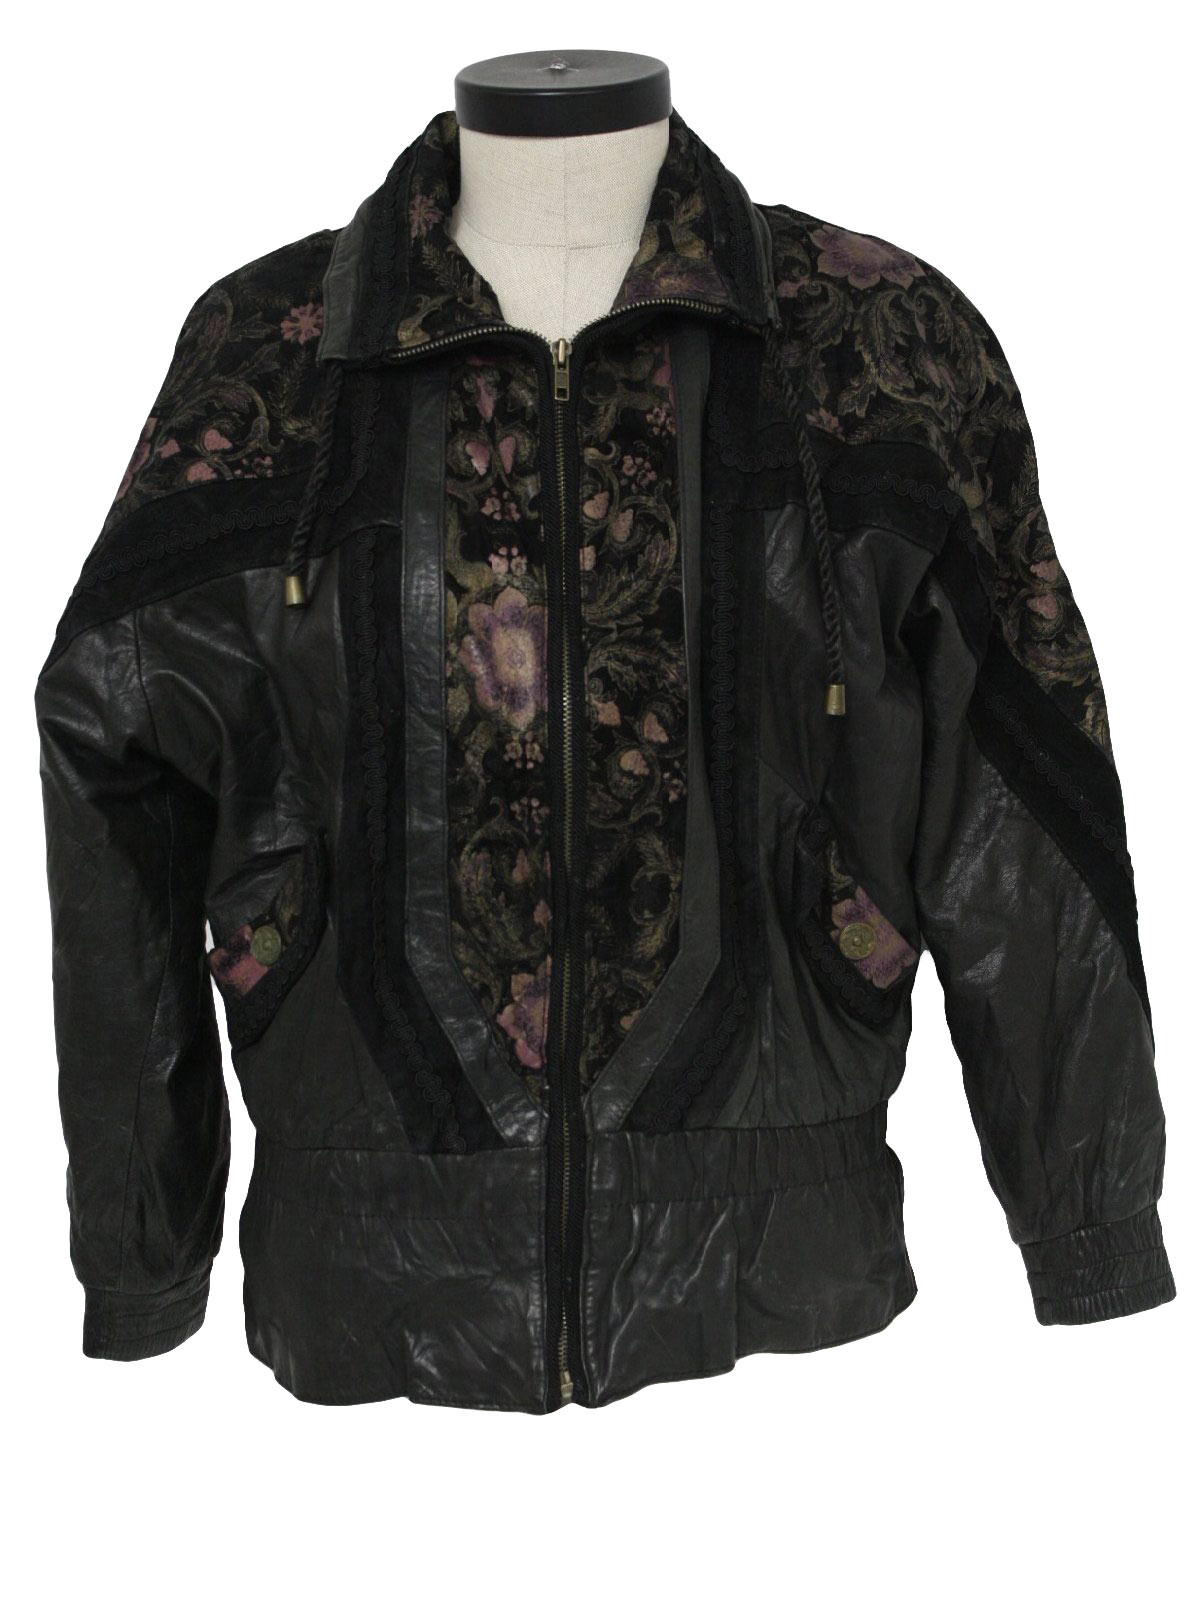 Retro 80's Leather Jacket: 80s -Jay Jacobs- Womens black, gold and ...